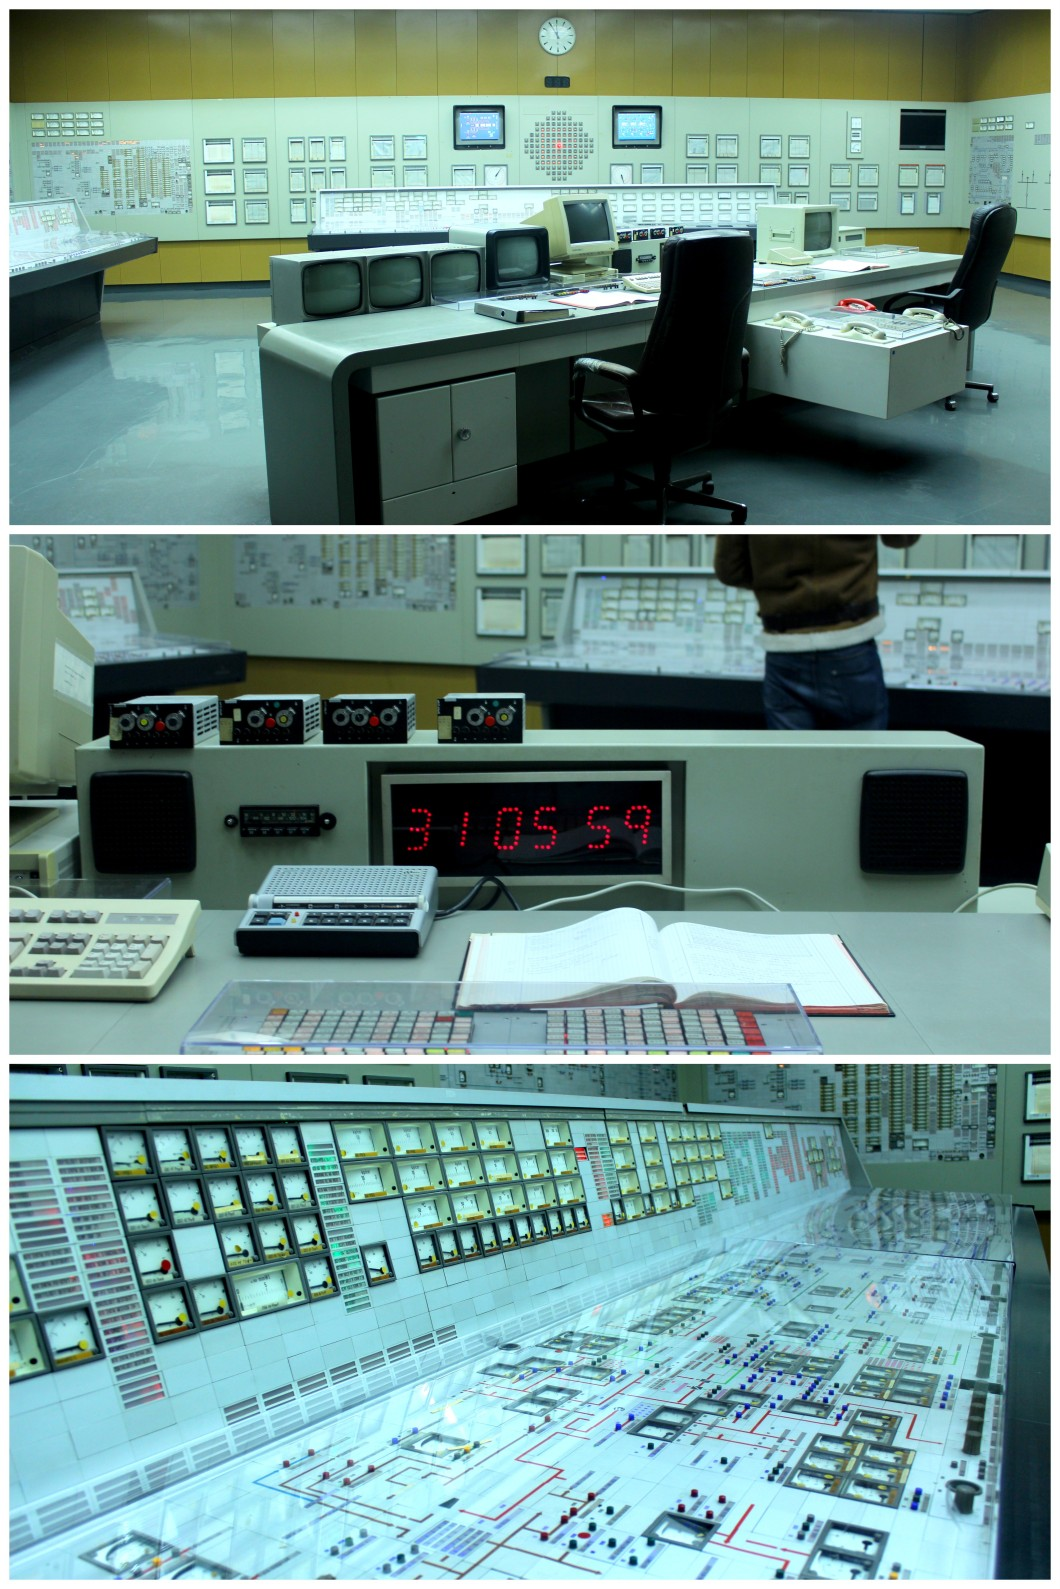 Zwentendorf nuclear power plant control room